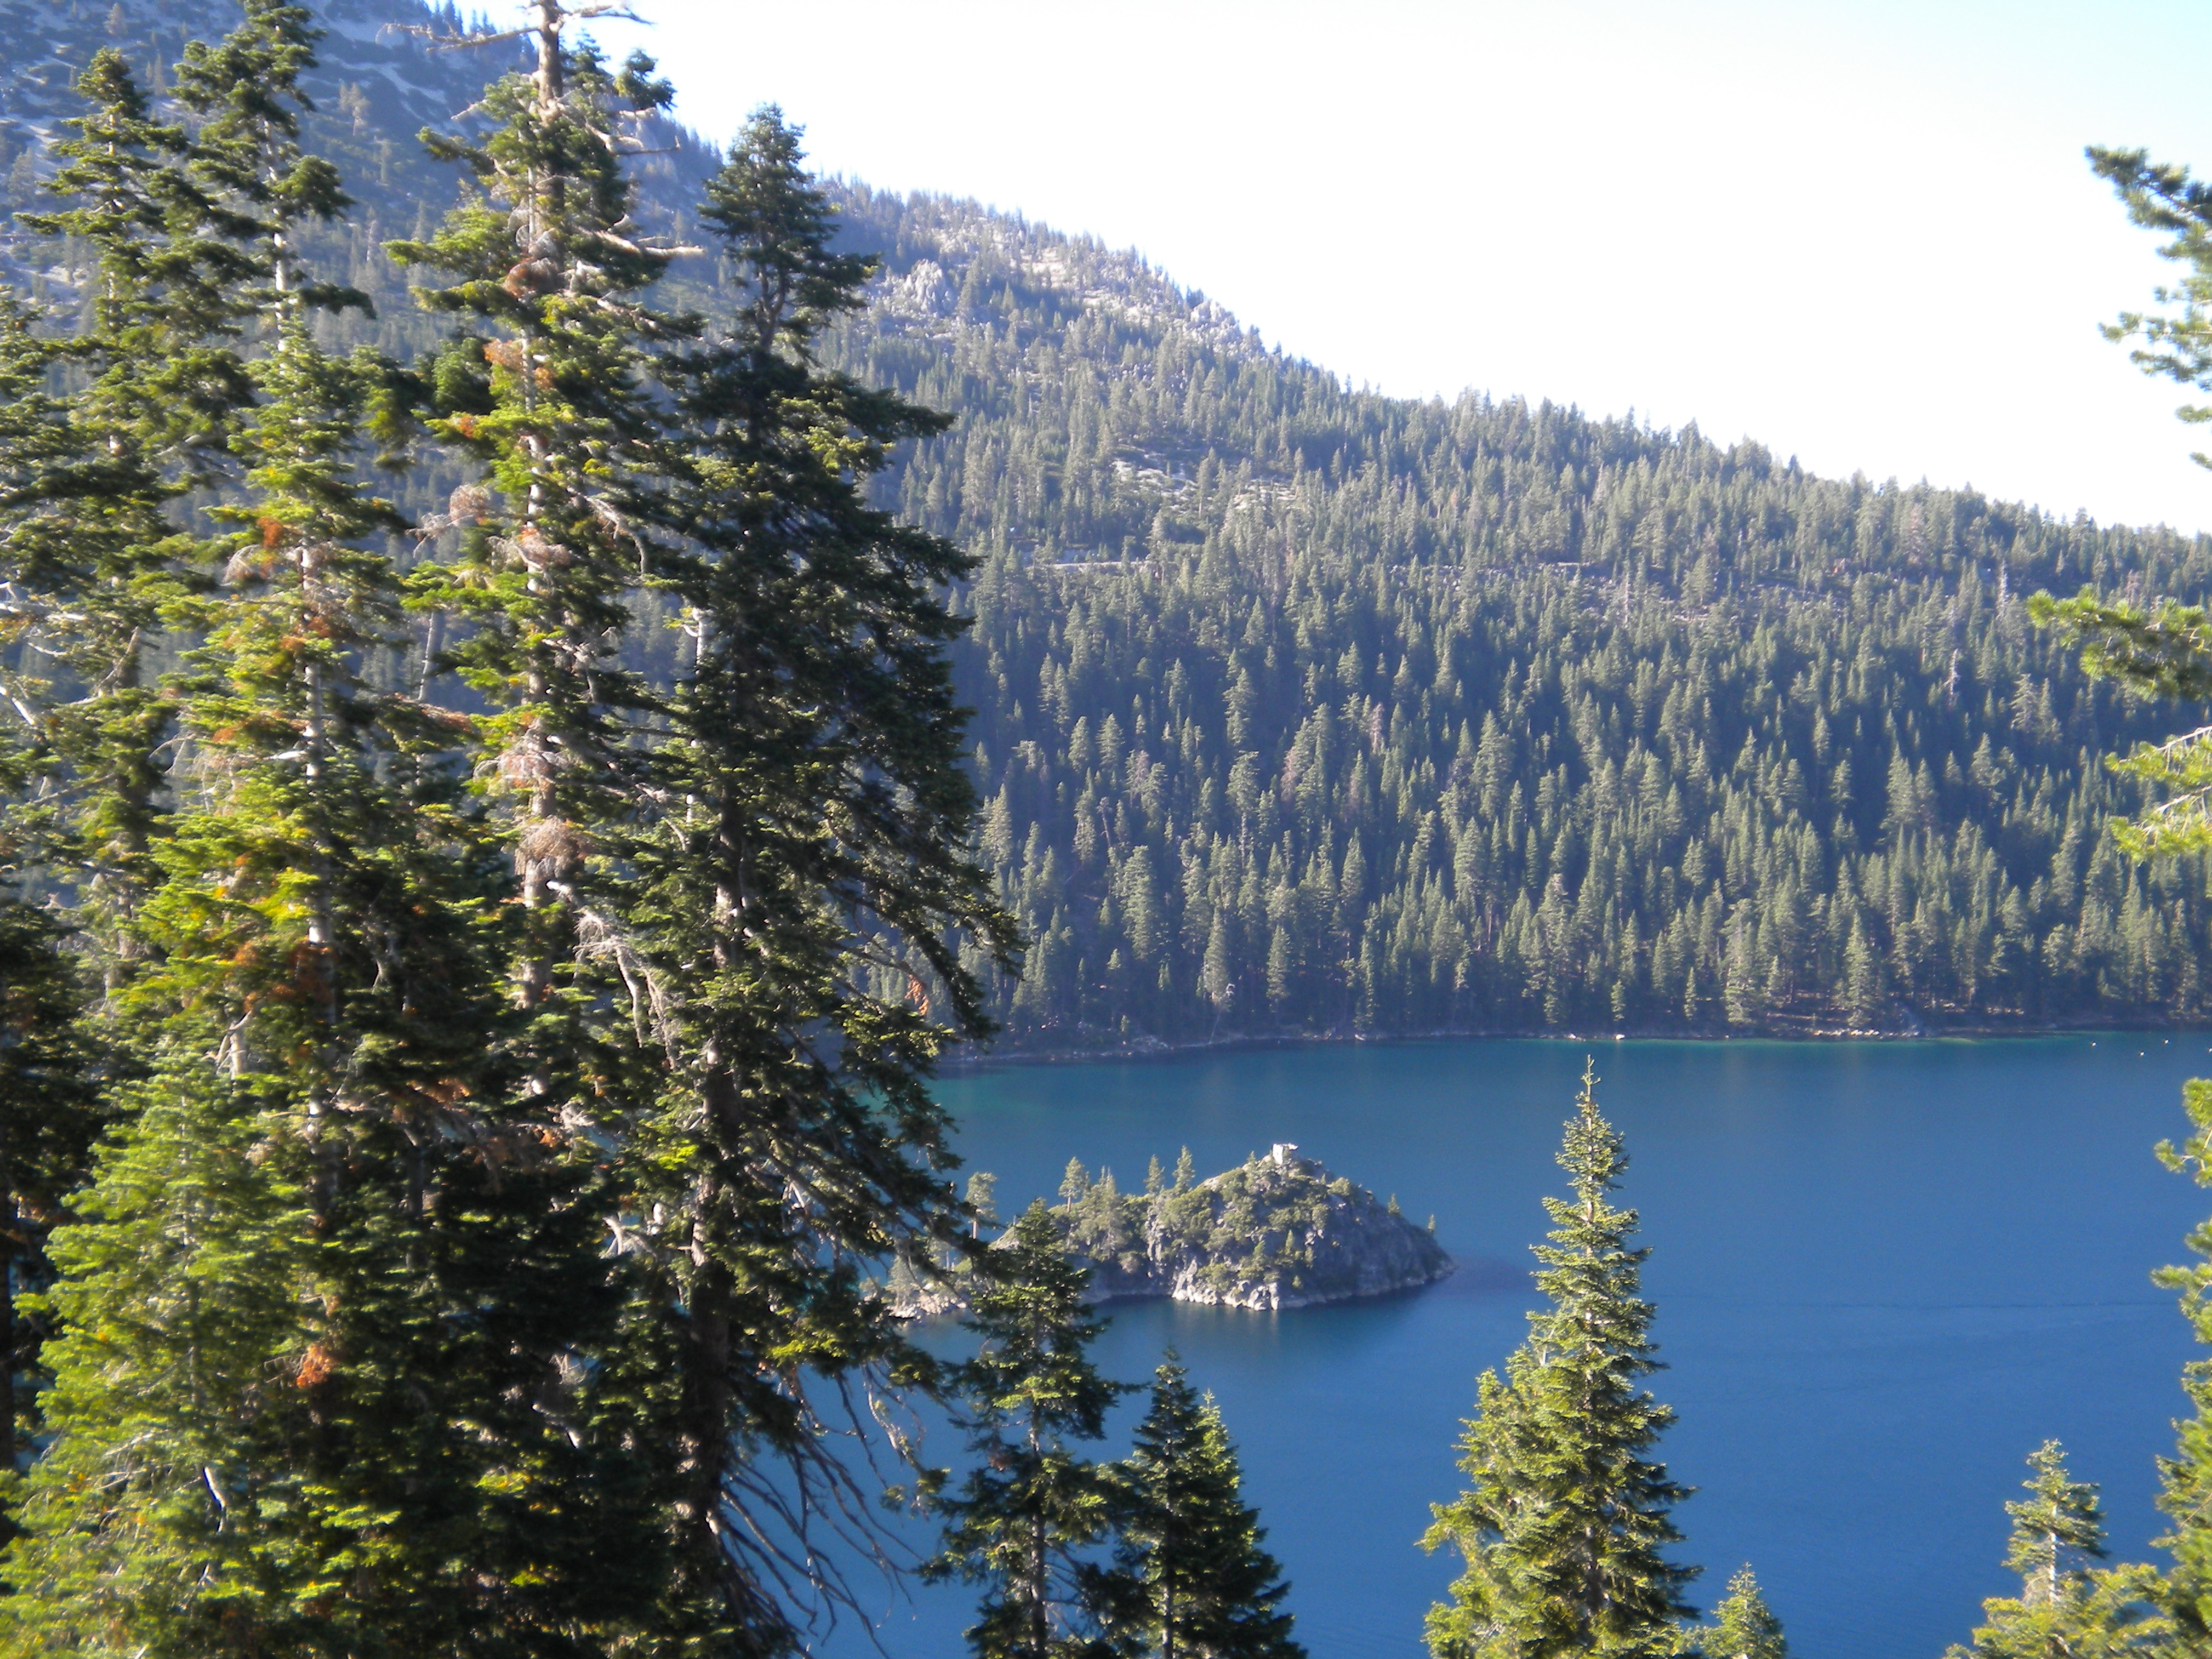 Inspiration Point en el Lago Tahoe